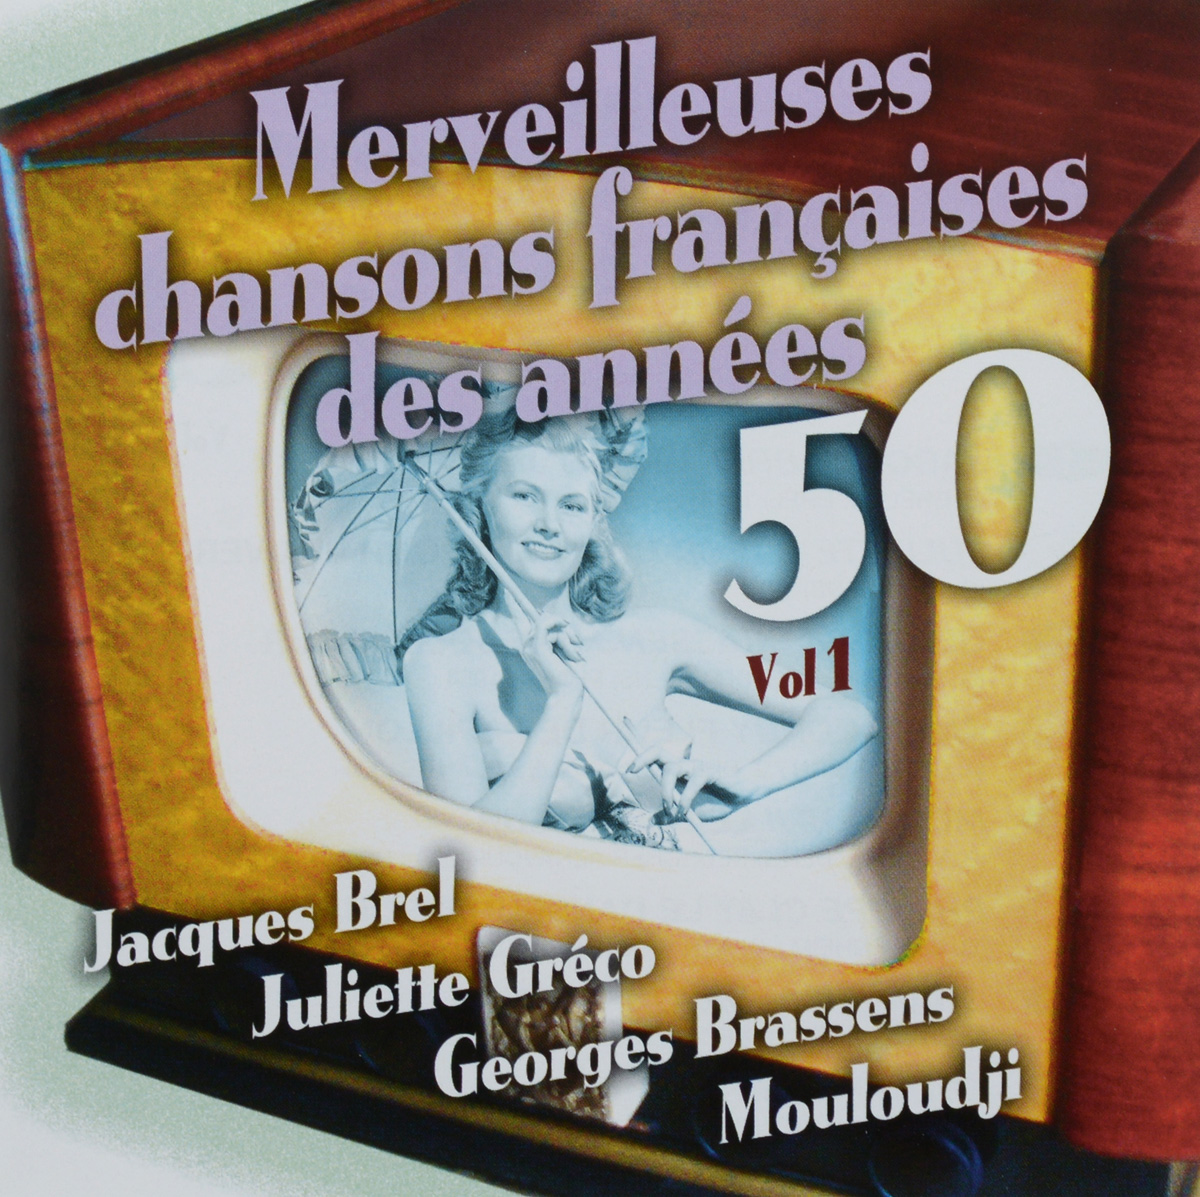 VARIOUS ARTISTS. CHANSONS FRANCAISES DES ANNEES 50 VOL. 1 various artists 80s disco stars live from moskau vol 1